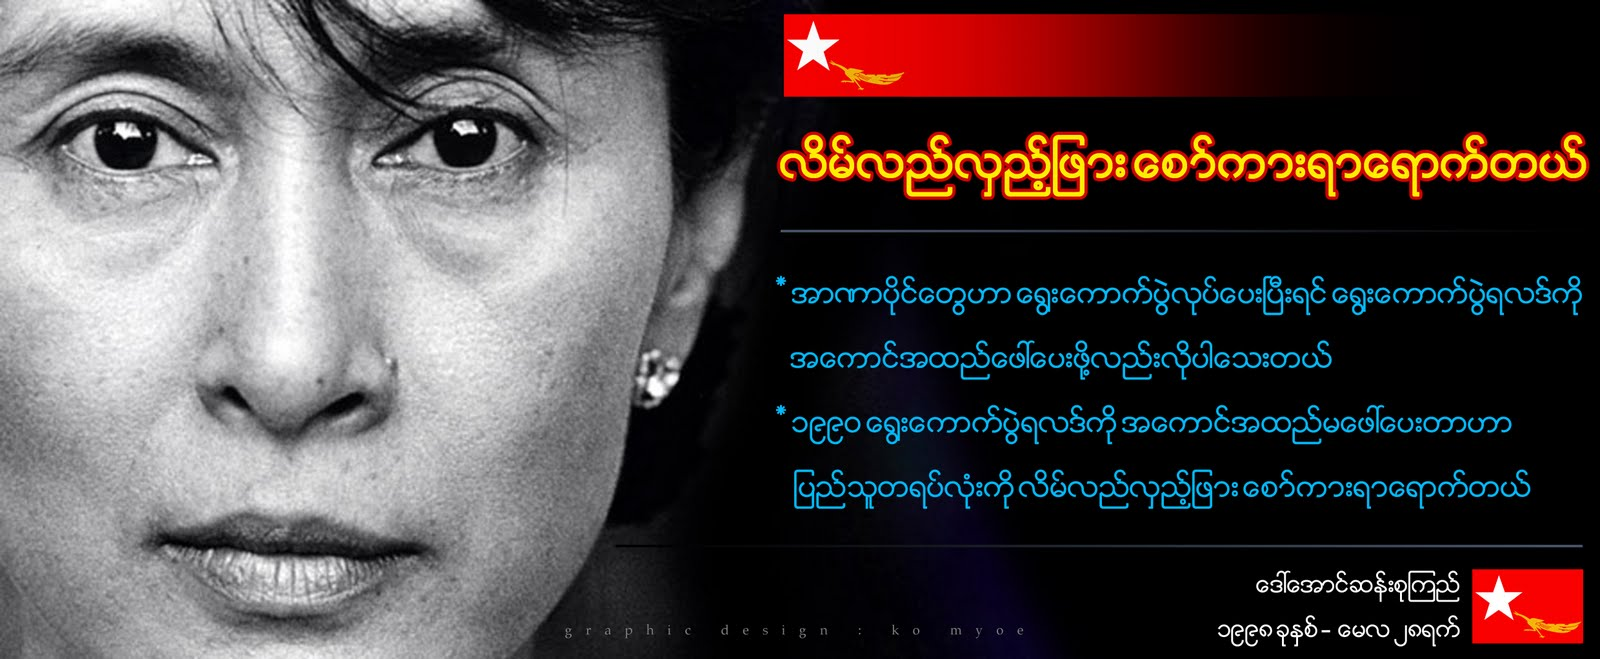 ko myo art aung san suu kyi moemaka in english ko myo art aung san suu kyi 65